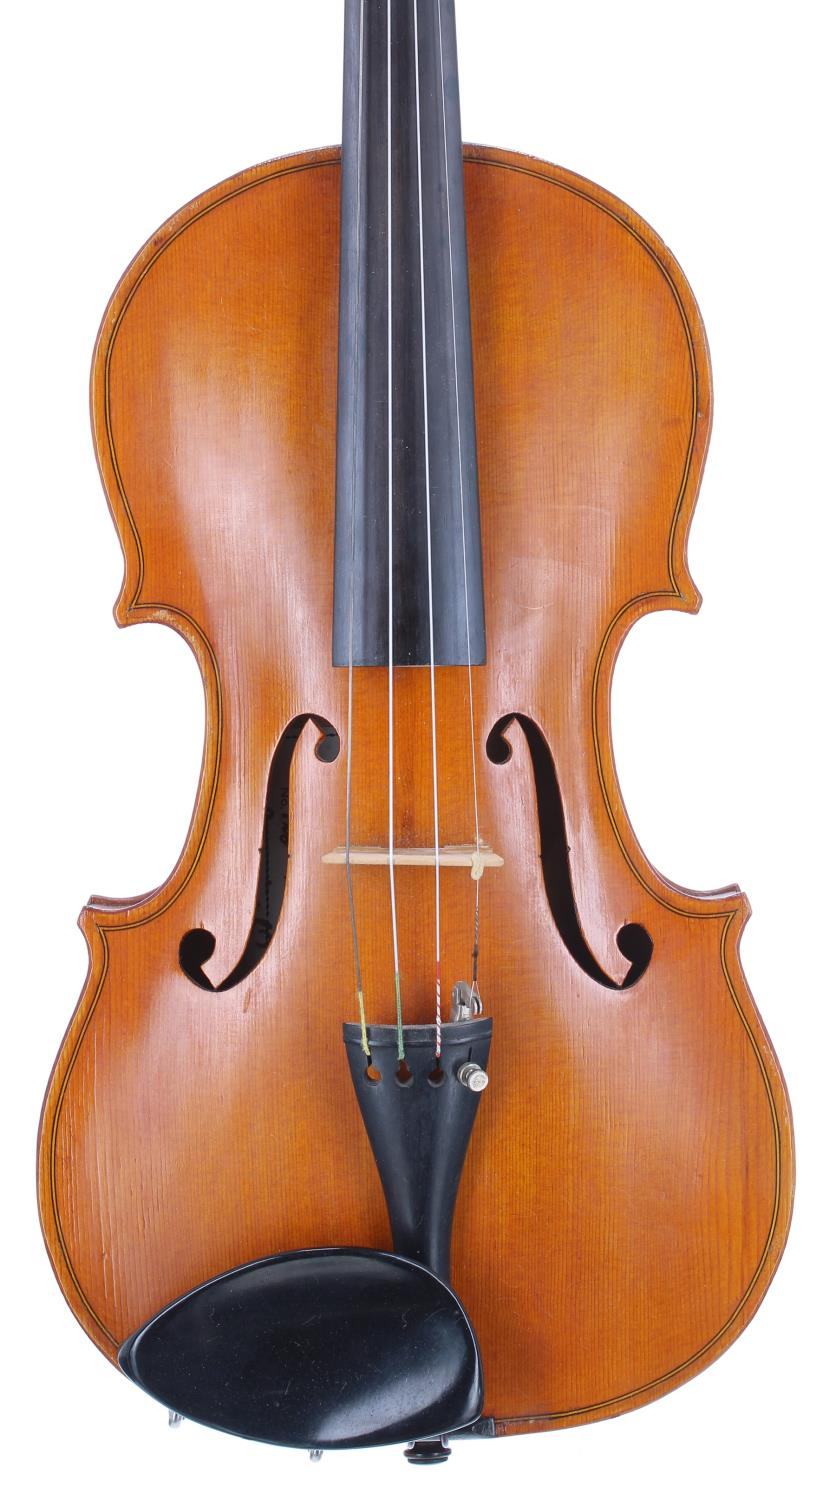 English violin by and labelled Dennis G. Plowright, maker, 28 Raleigh Road, Exmouth, no. 128, 1988